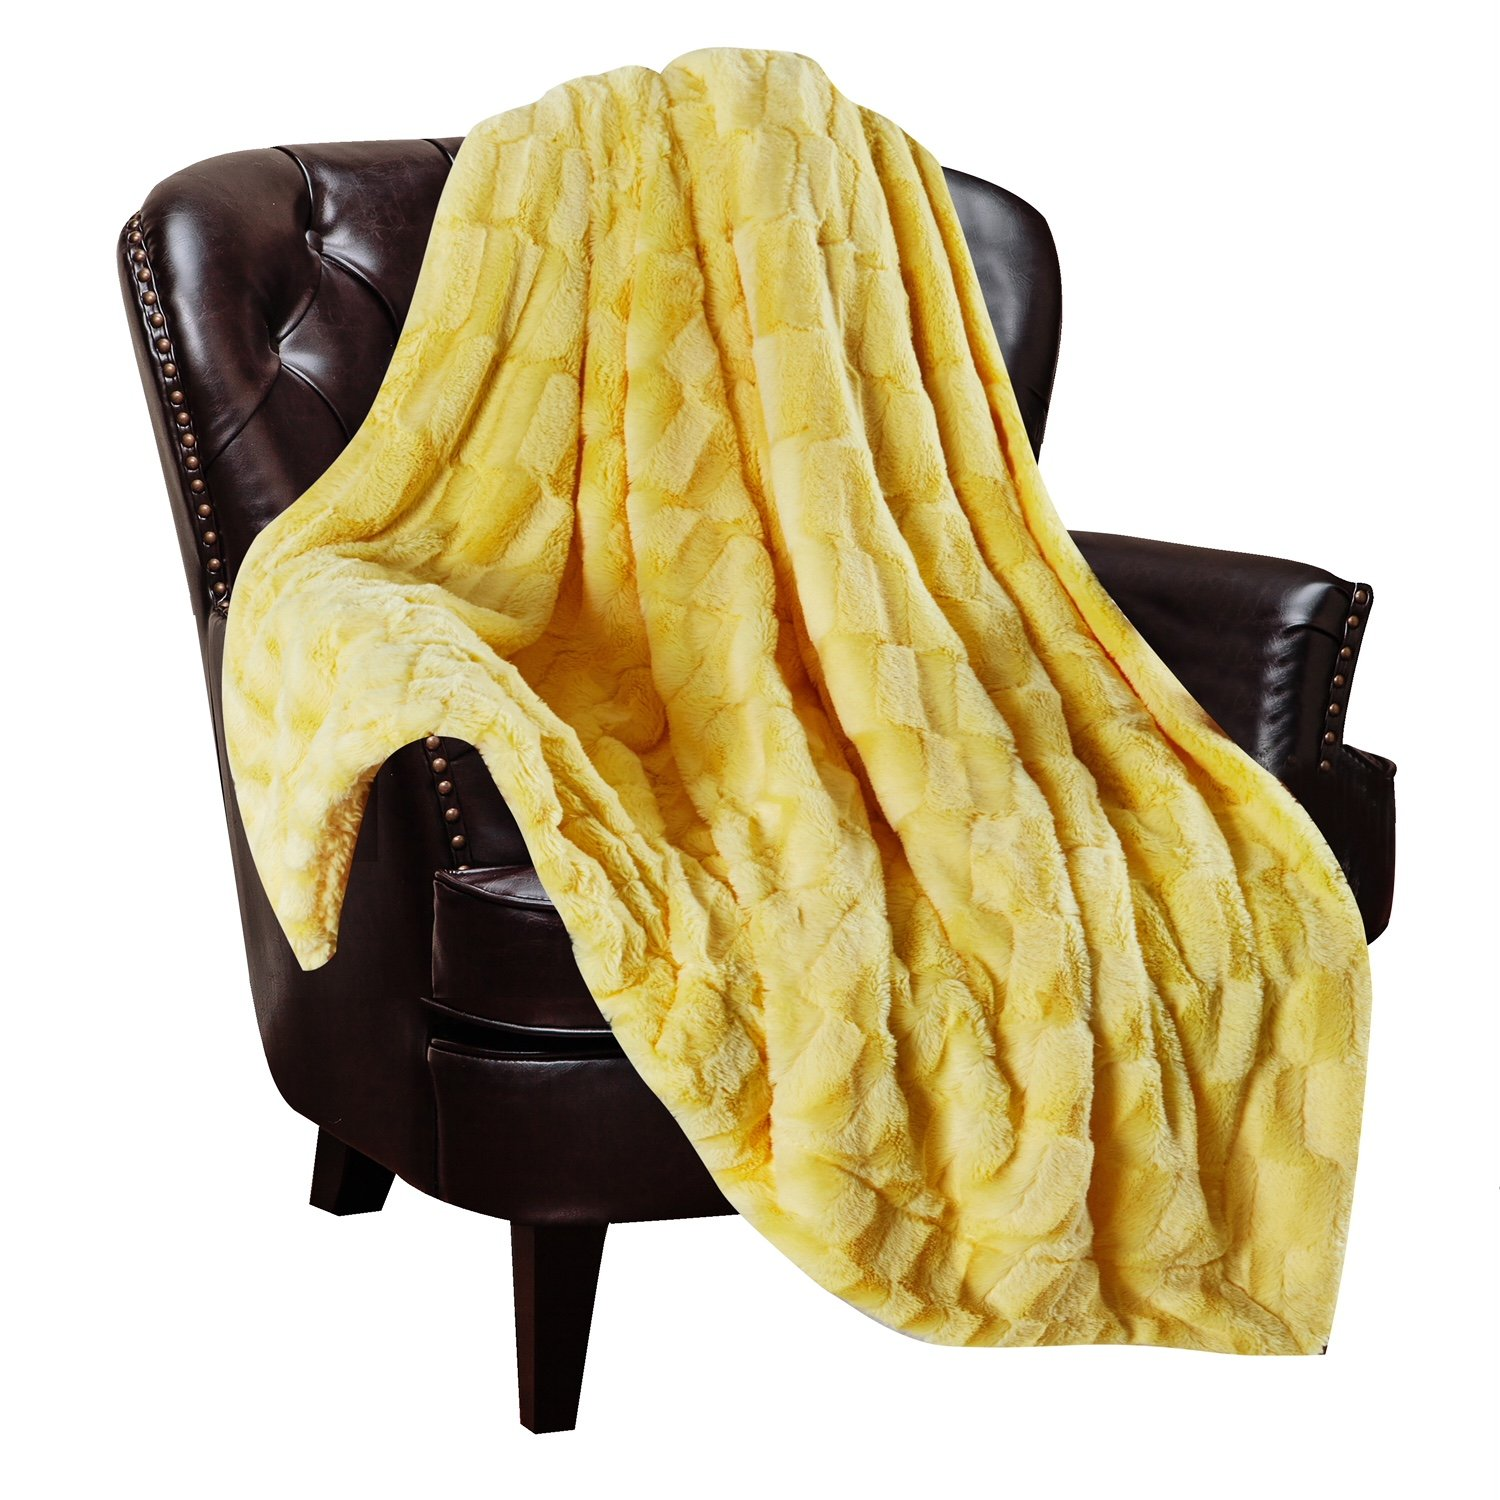 Chanasya Super Soft Fuzzy Faux Fur Elegant Rectangular Embossed Throw Blanket | Fluffy Plush Sherpa Microfiber Sunny Yellow Blanket for Bed Couch Living Room Fall Winter Spring (50'' x 65'') - Yellow